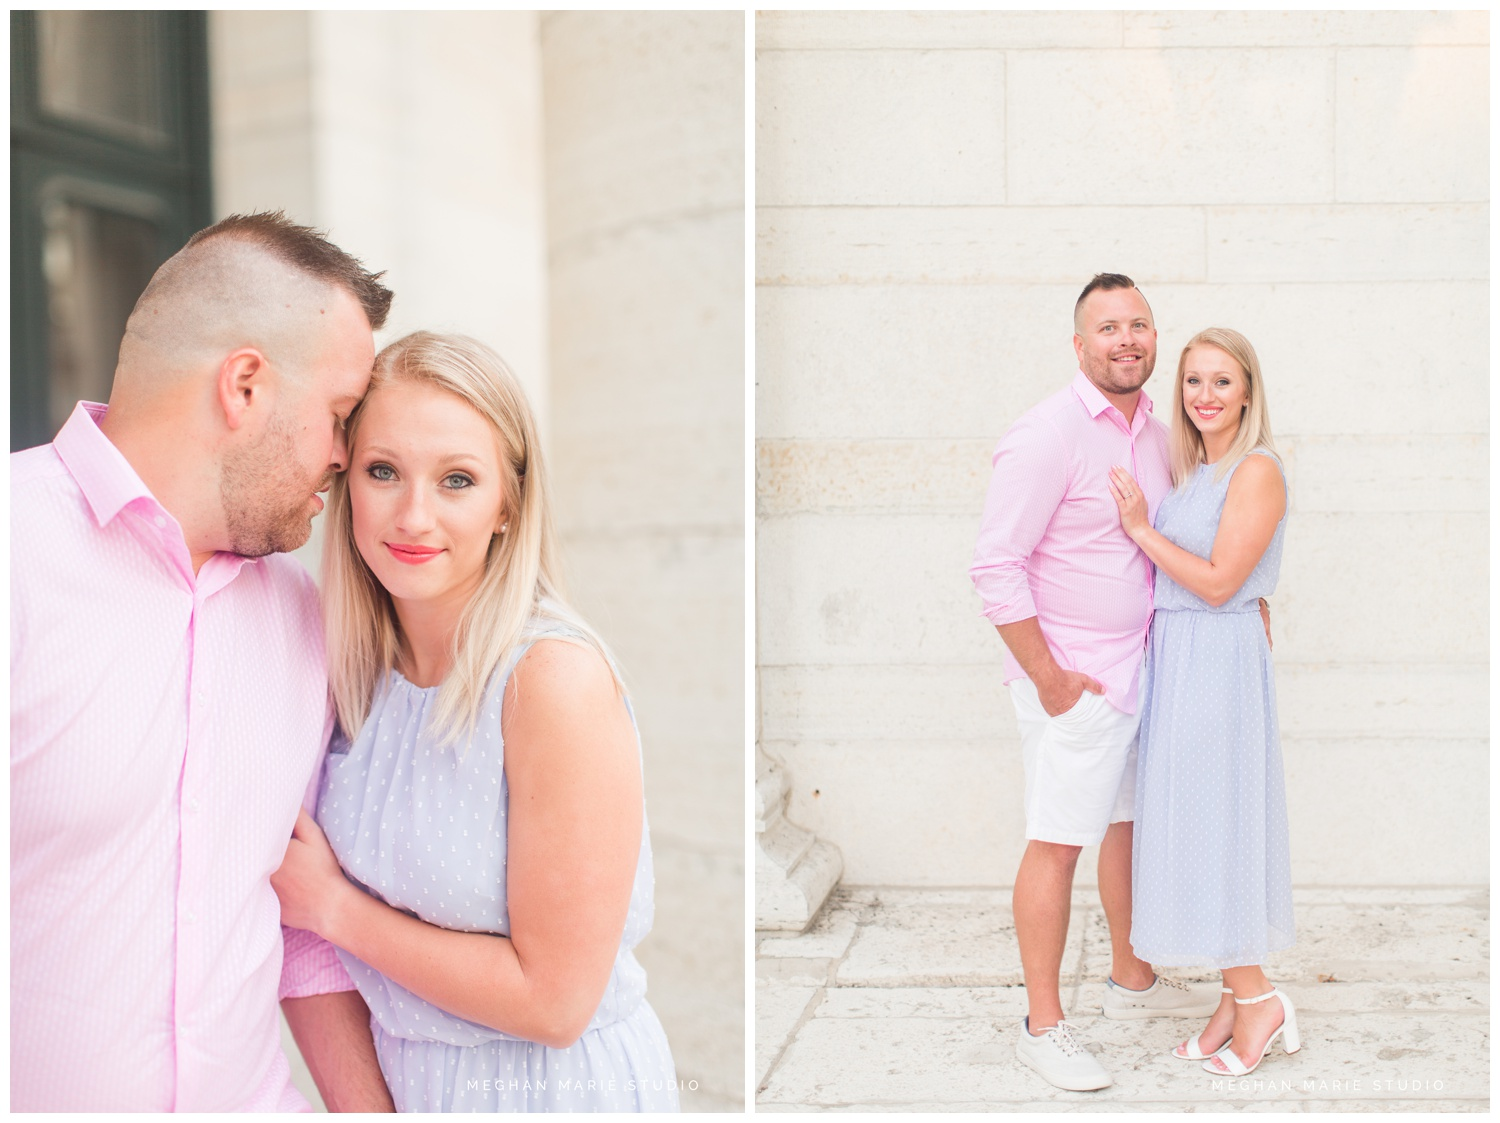 meghan marie studio ohio dayton troy photographer wedding photography engagement alex kaila family honeycreek preserve champagne downtown courthouse urban rural earth toned nature woods barn country city stone fountain elegant_0452.jpg